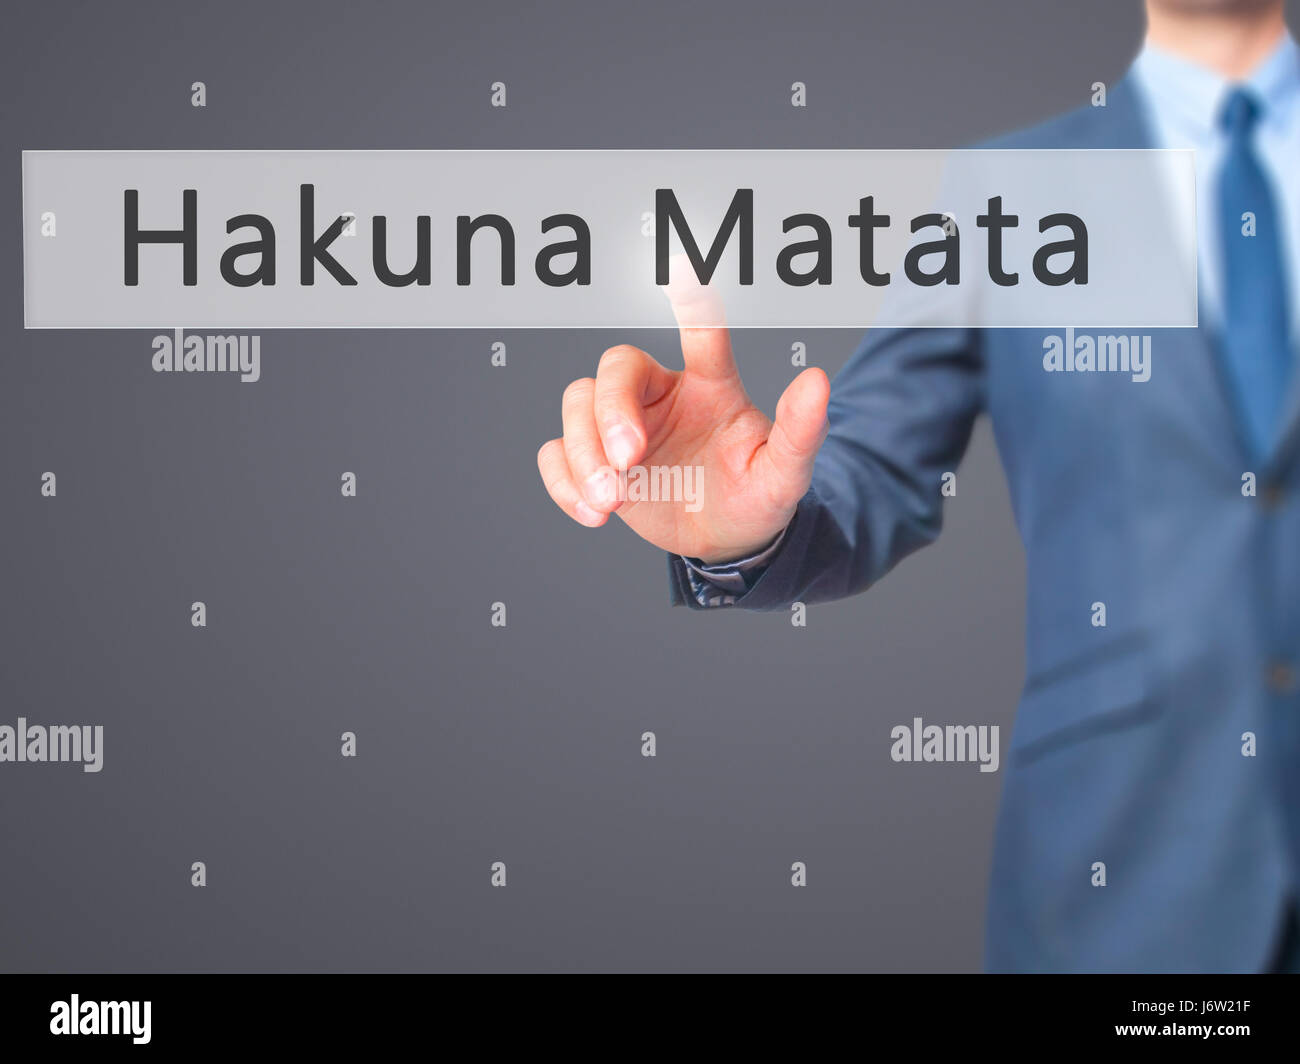 Hakuna Matata (Swahili phrase it means no worries)  - Businessman hand pressing button on touch screen interface. - Stock Image